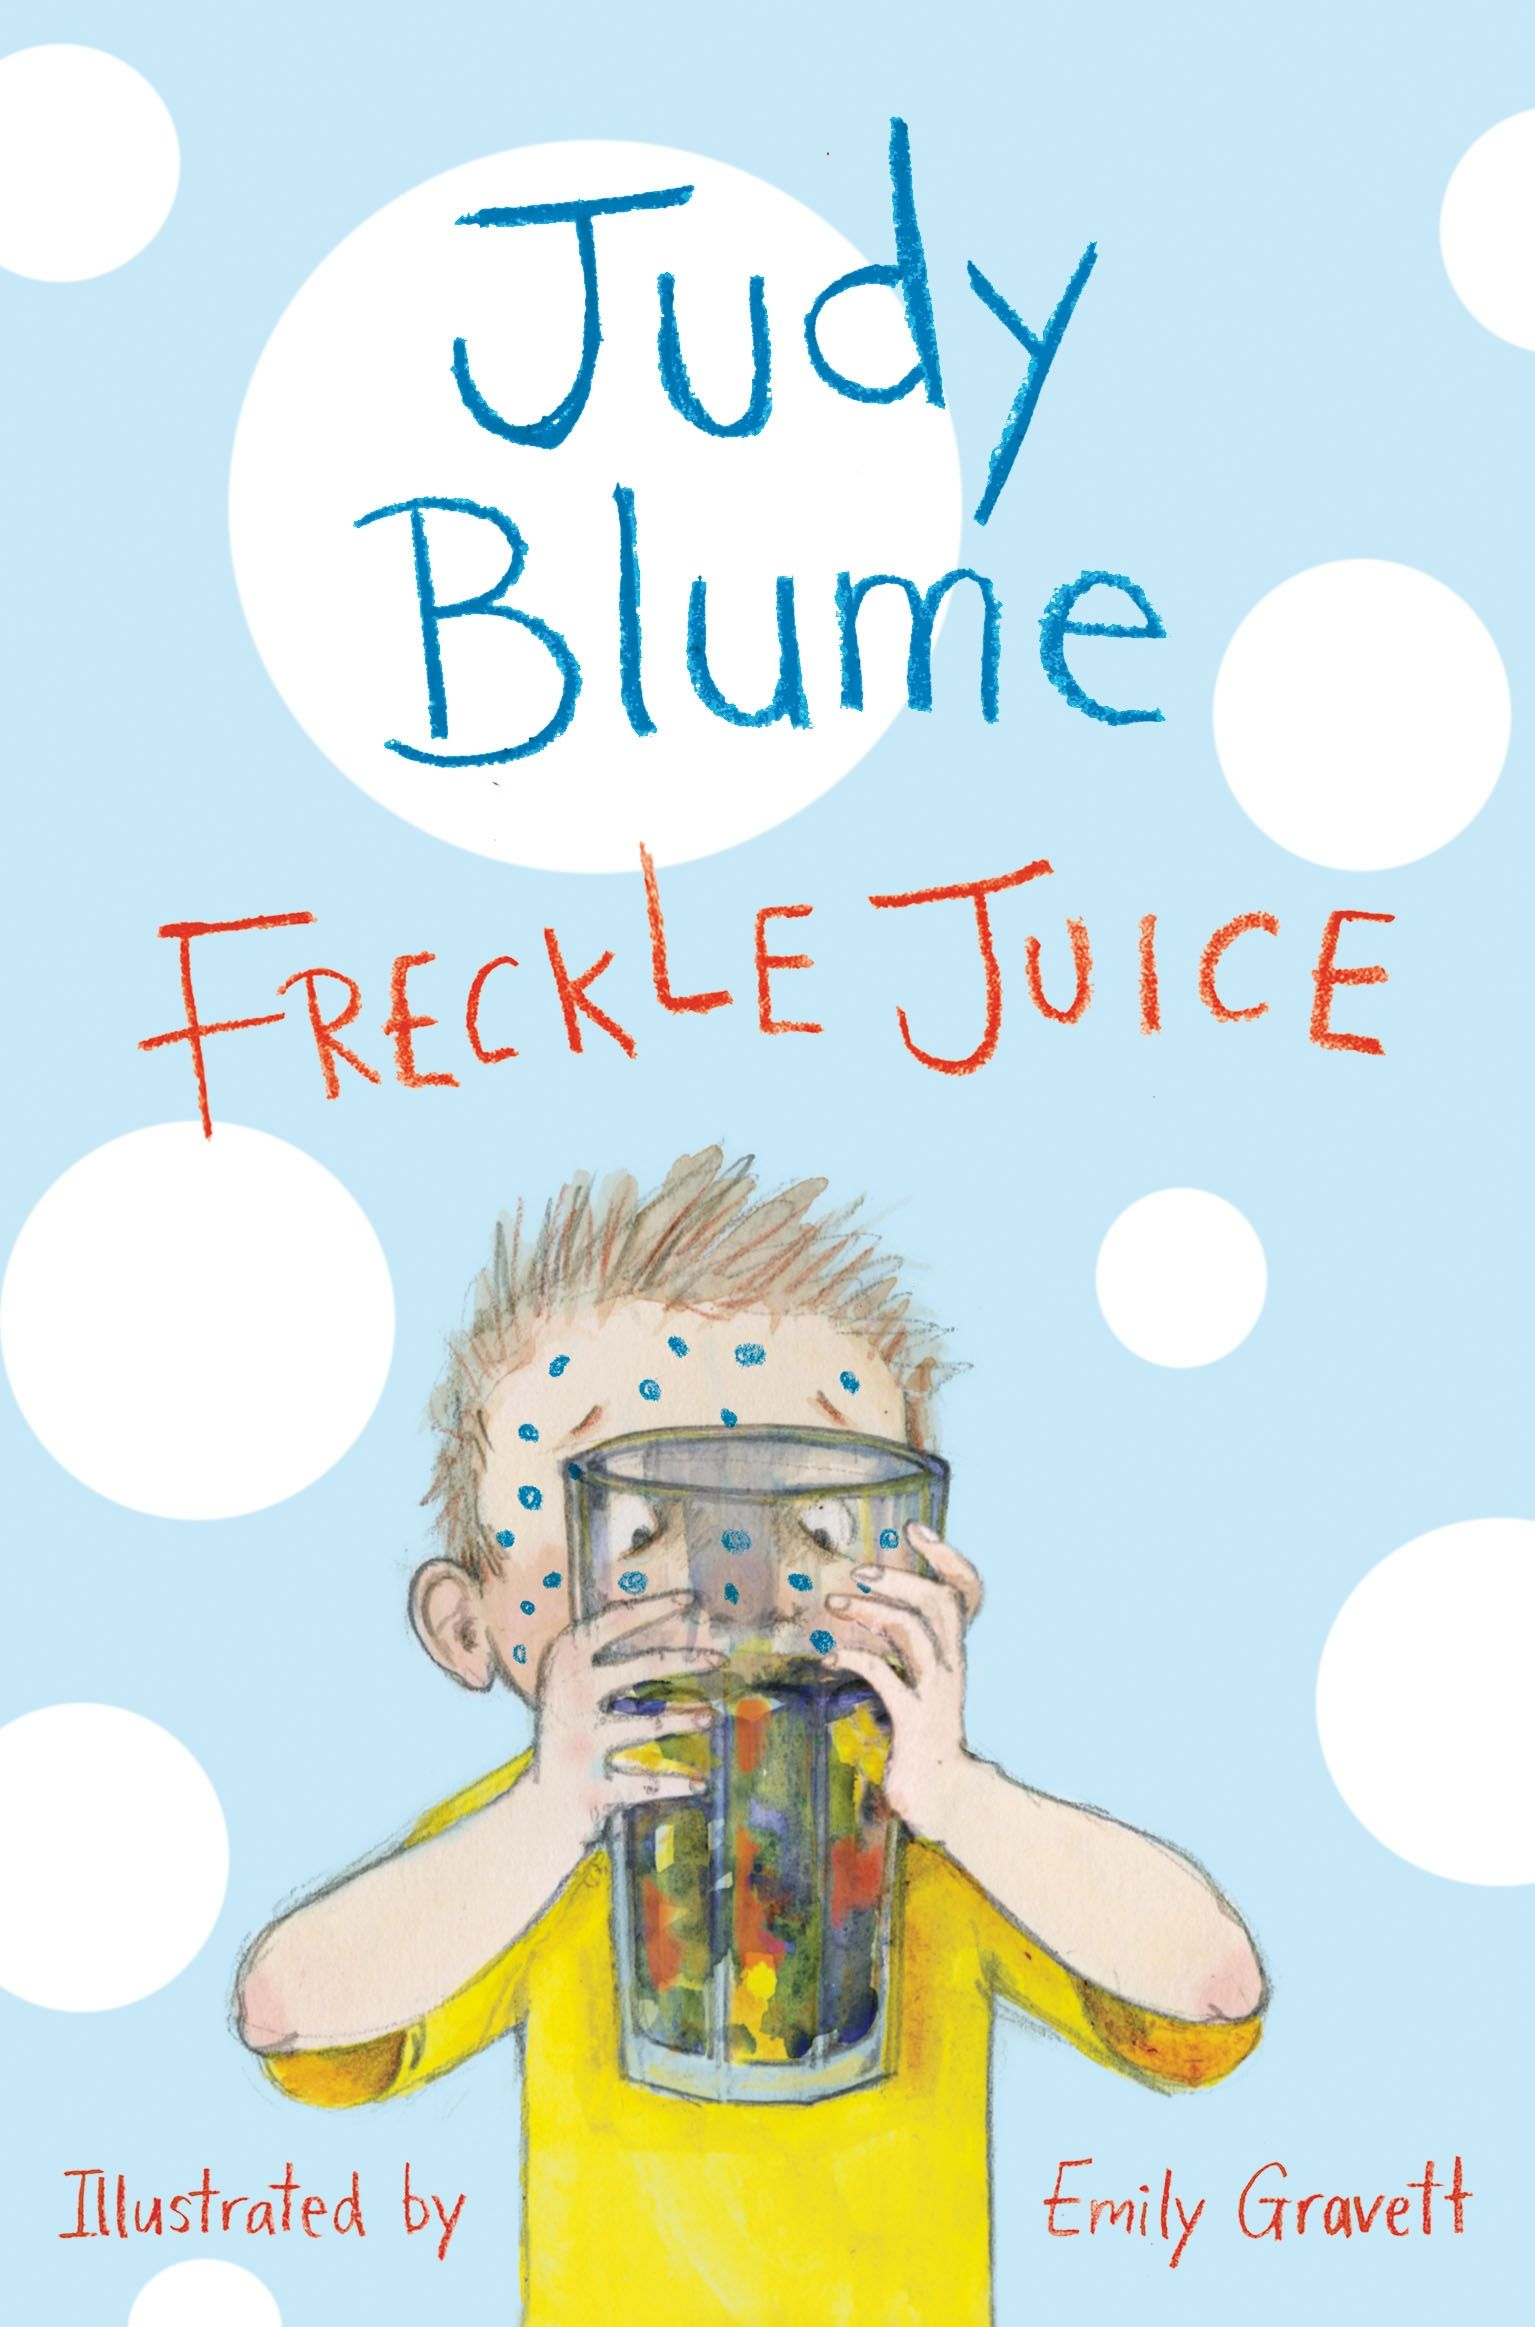 Worksheets Freckle Juice Worksheets gorgeous new freckle juice cover drawn by the amazing emily gravett